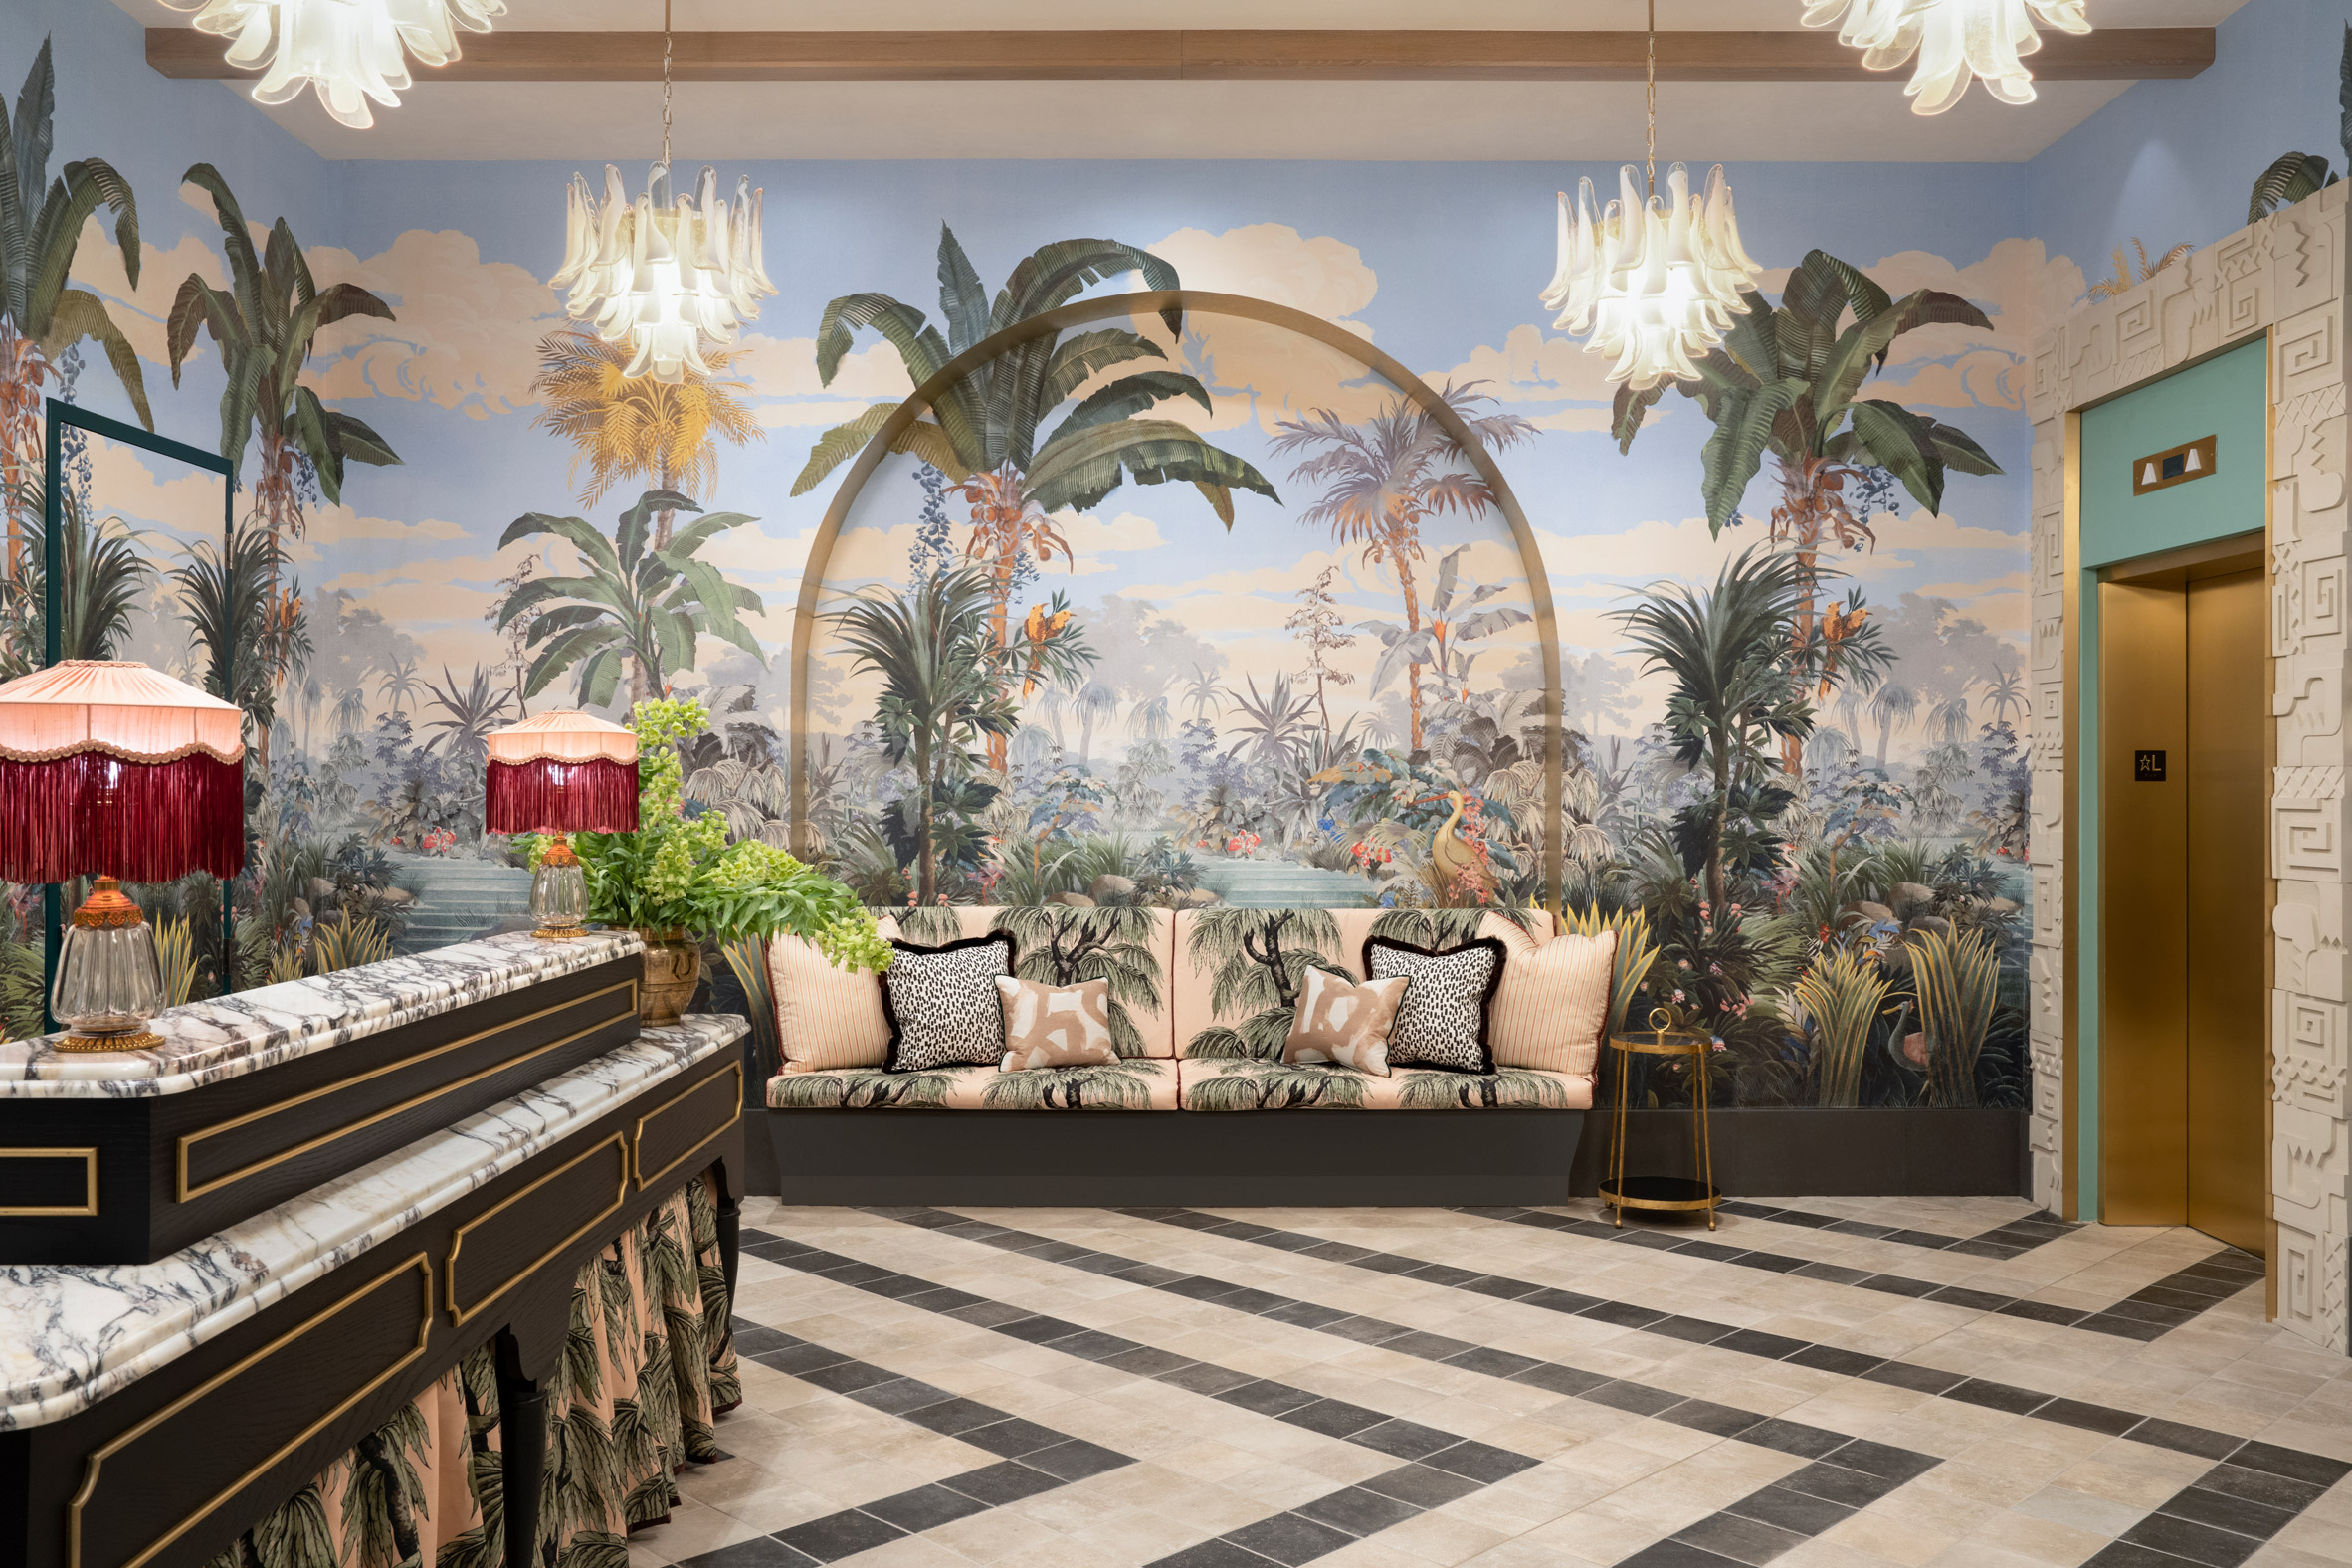 Lobby of the Goodtime Hotel with tropical mural and patterned tiles